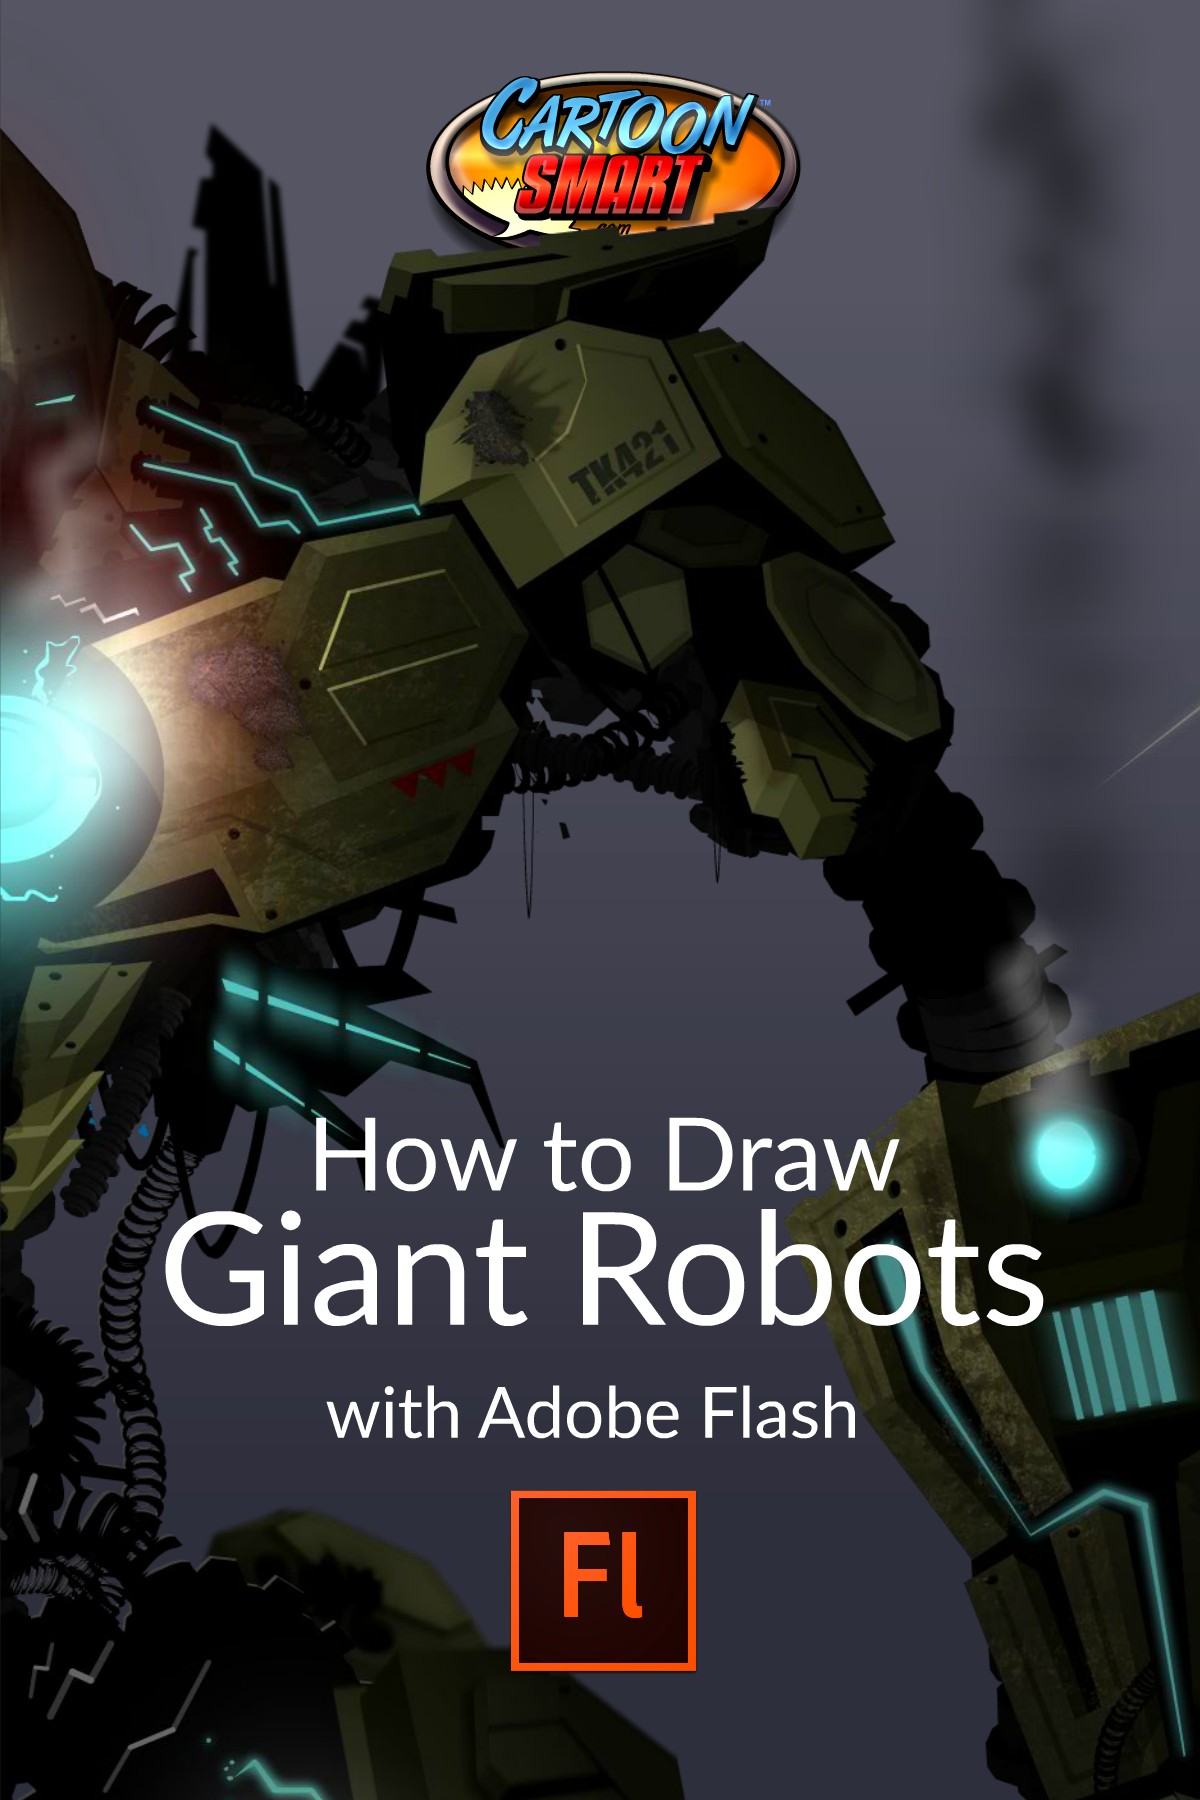 How to Draw Giant Robots with Adobe Flash - Video Tutorials